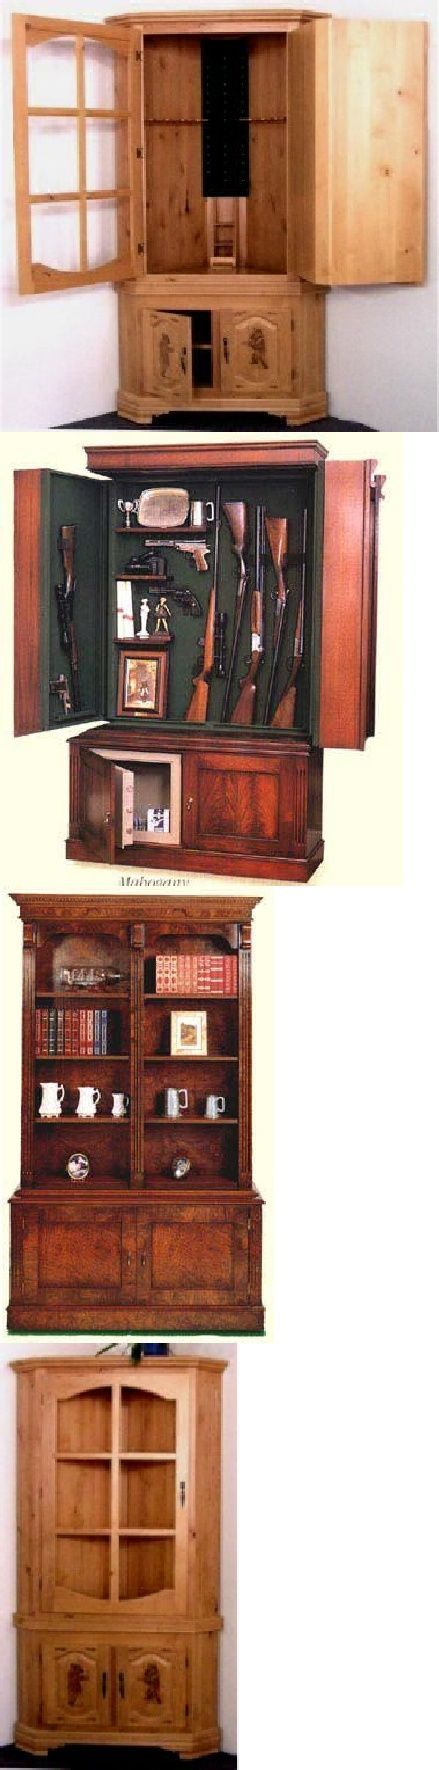 16 best Gun Hiding Spots images on Pinterest | Geheimfach ...